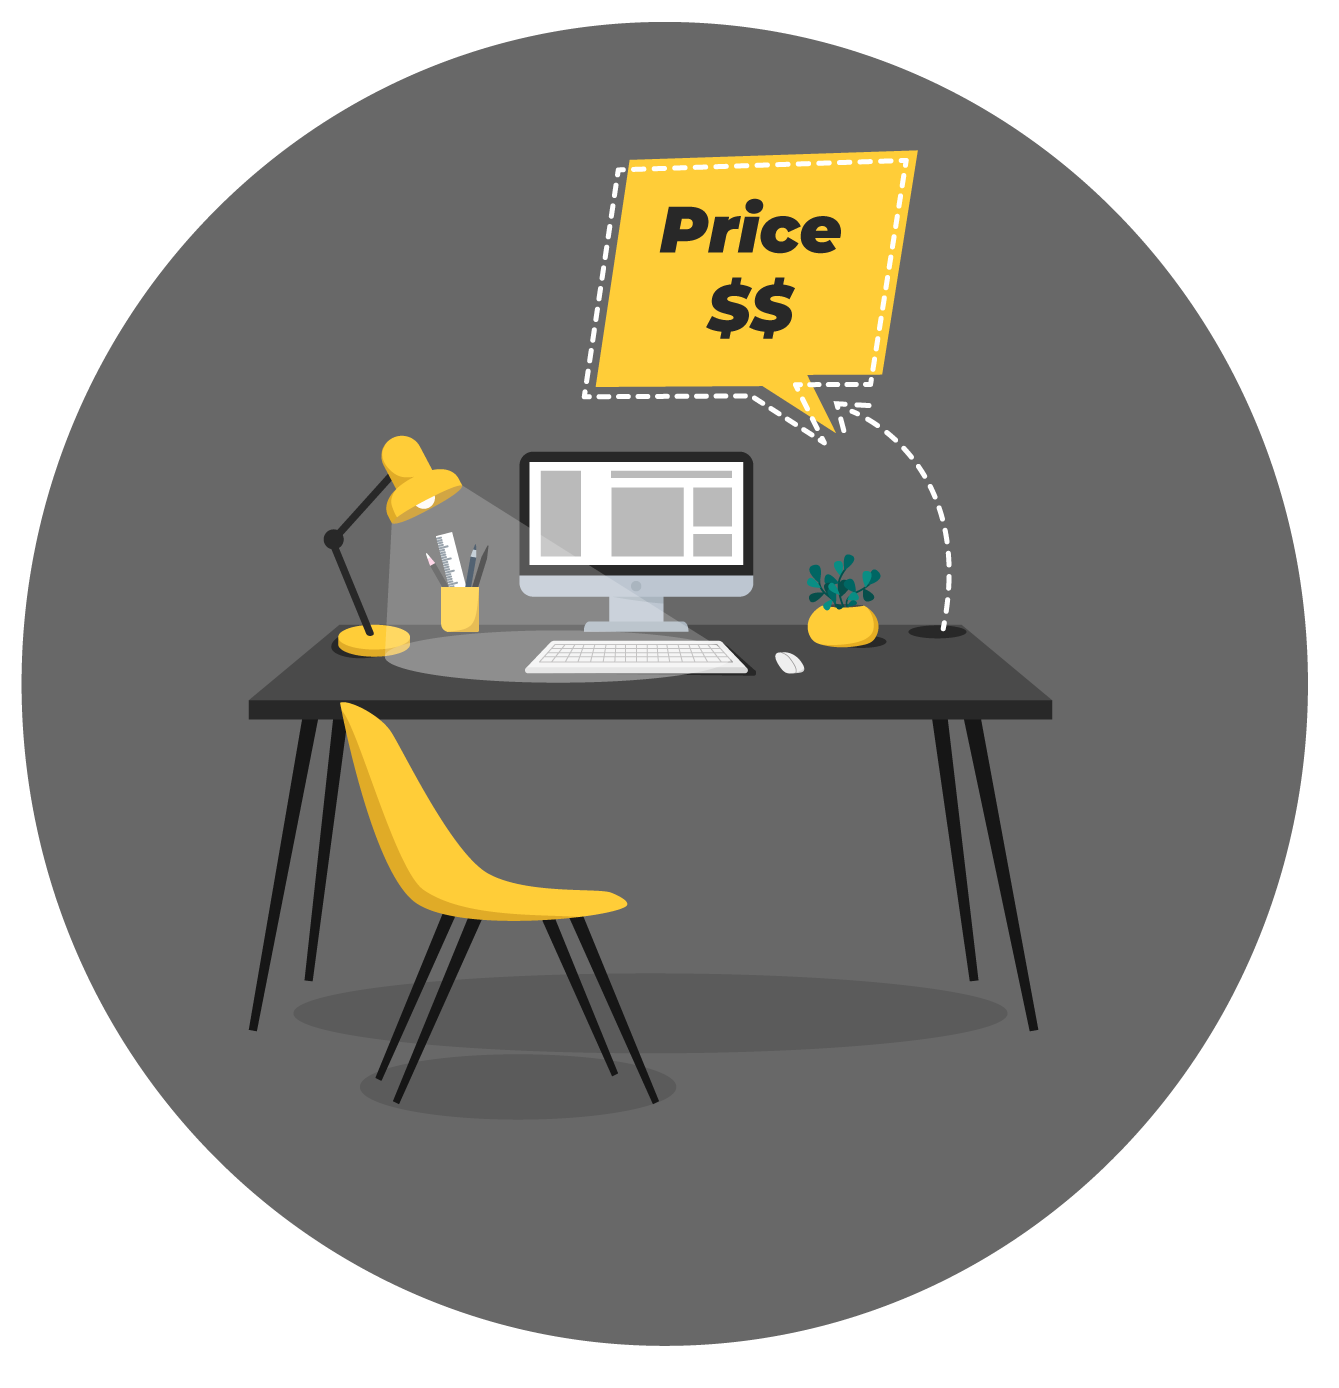 Coworking And Pricing